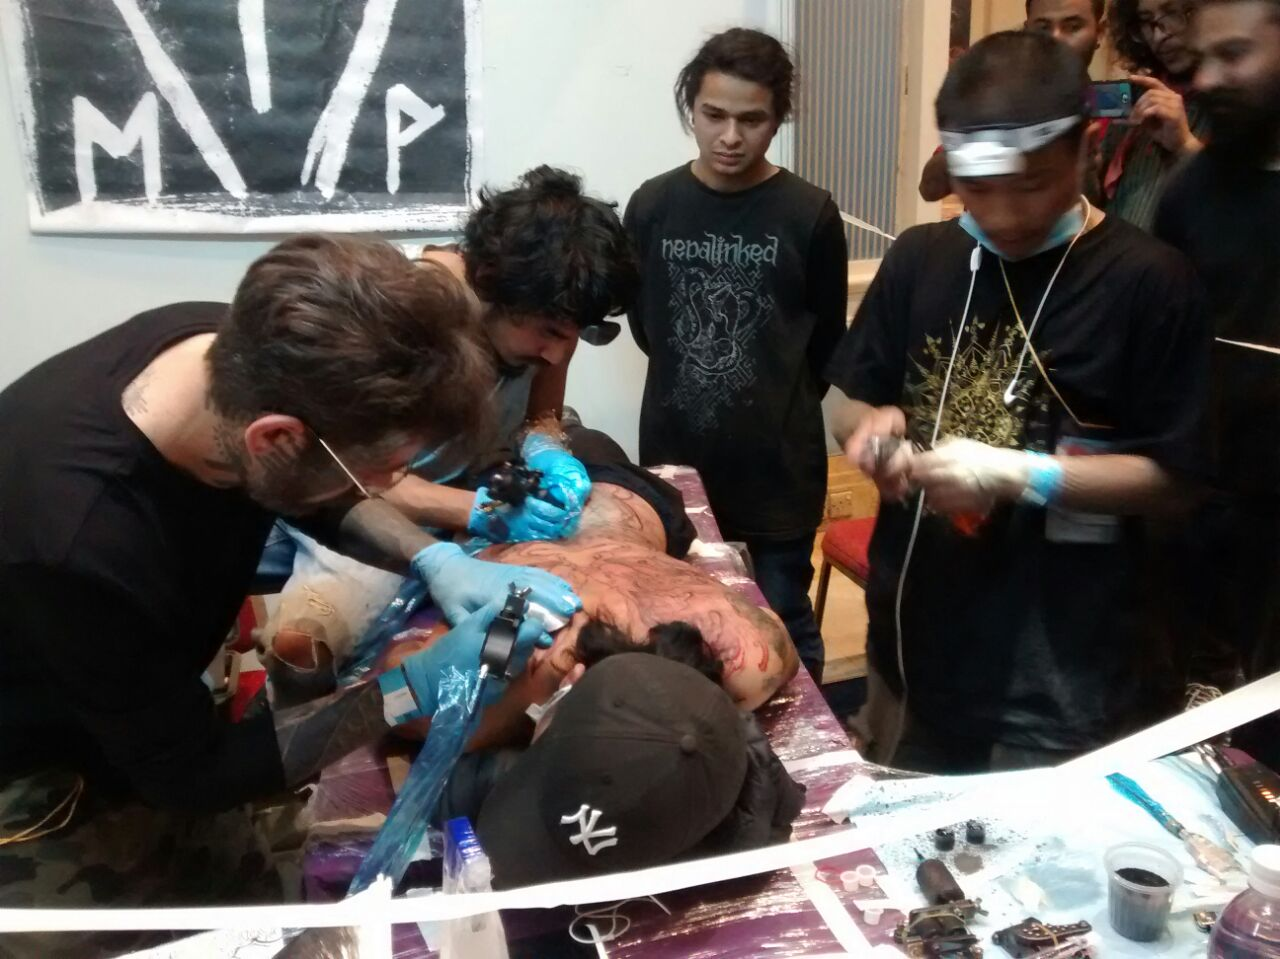 Nepal Tattoo Convention 2016: #ThePowerOfWe